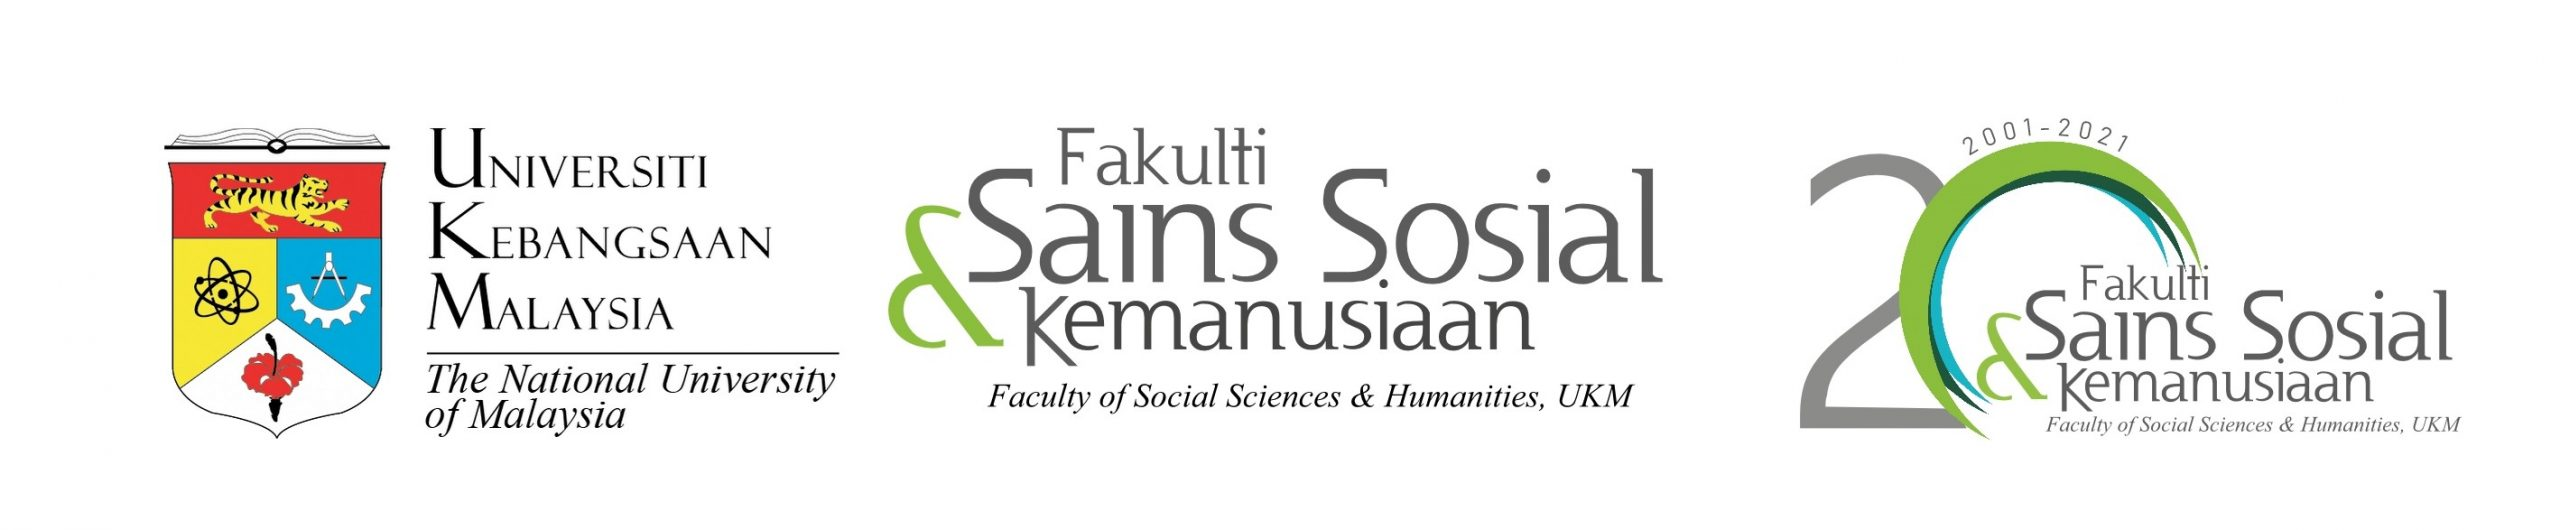 Faculty of Social Sciences and Humanities